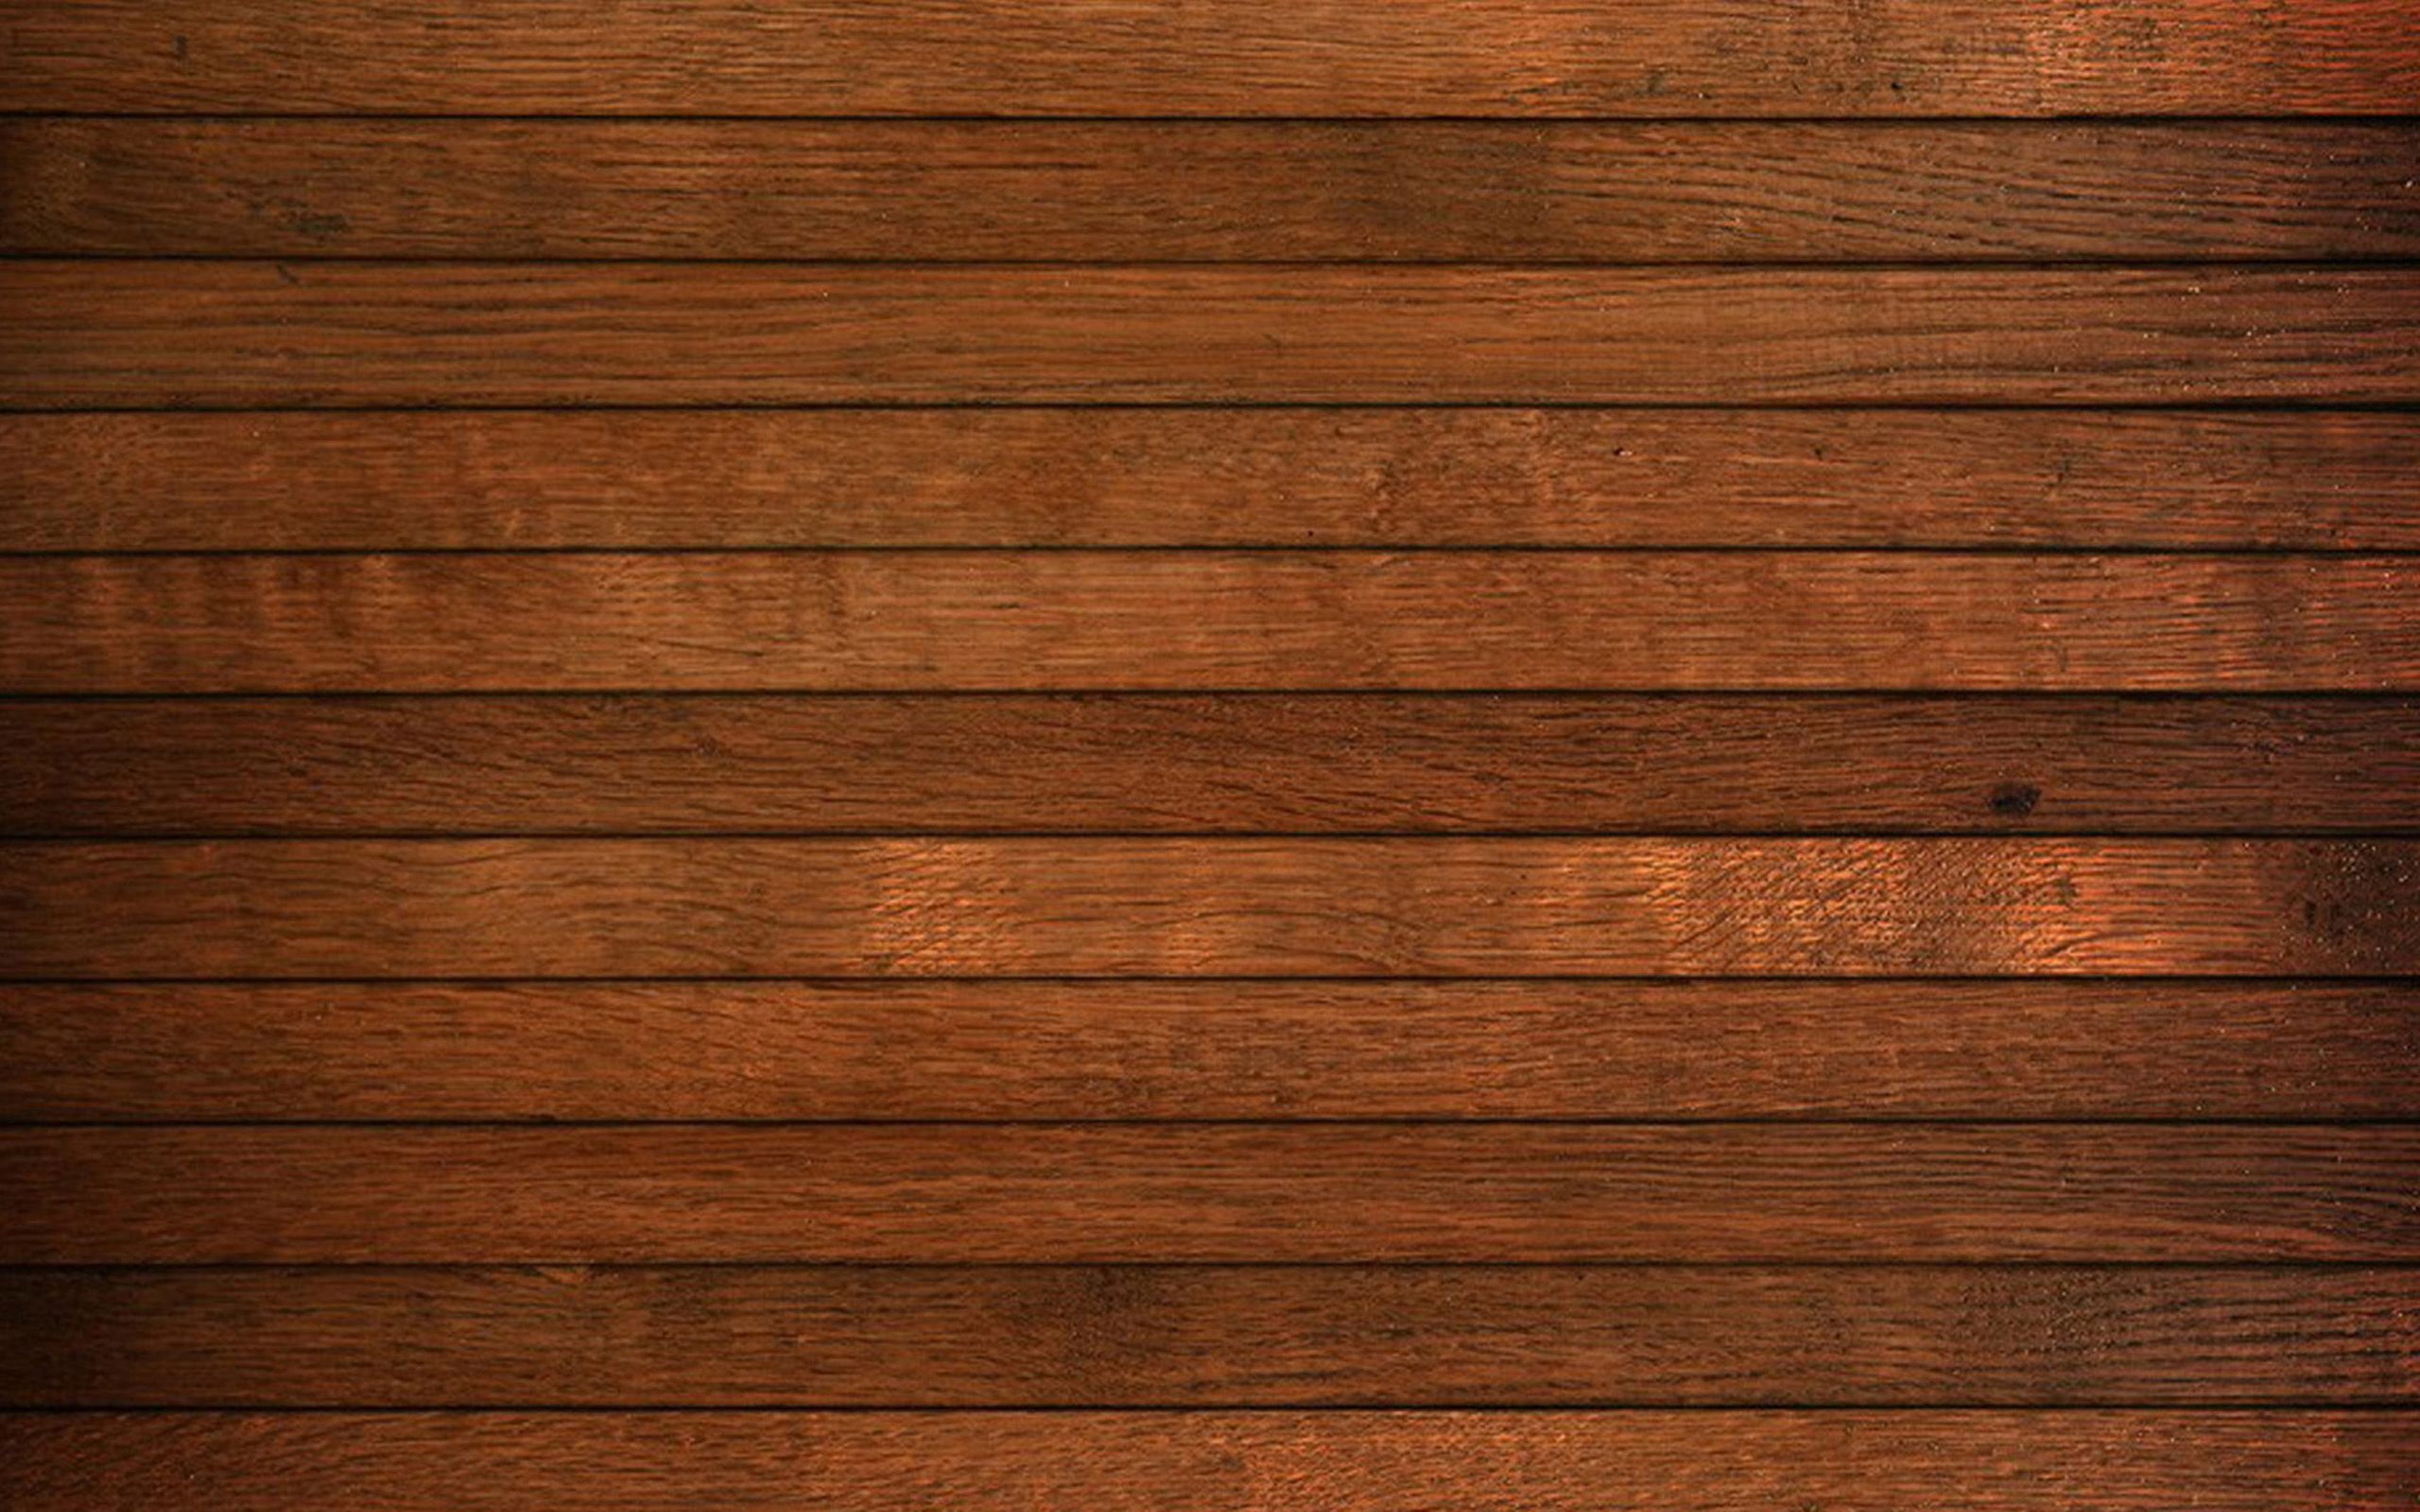 Rough Wood Boards Hd Desktop Wallpaper High Definition Fullscreen Mobile Rough Wood Wood Board Rustic Wood